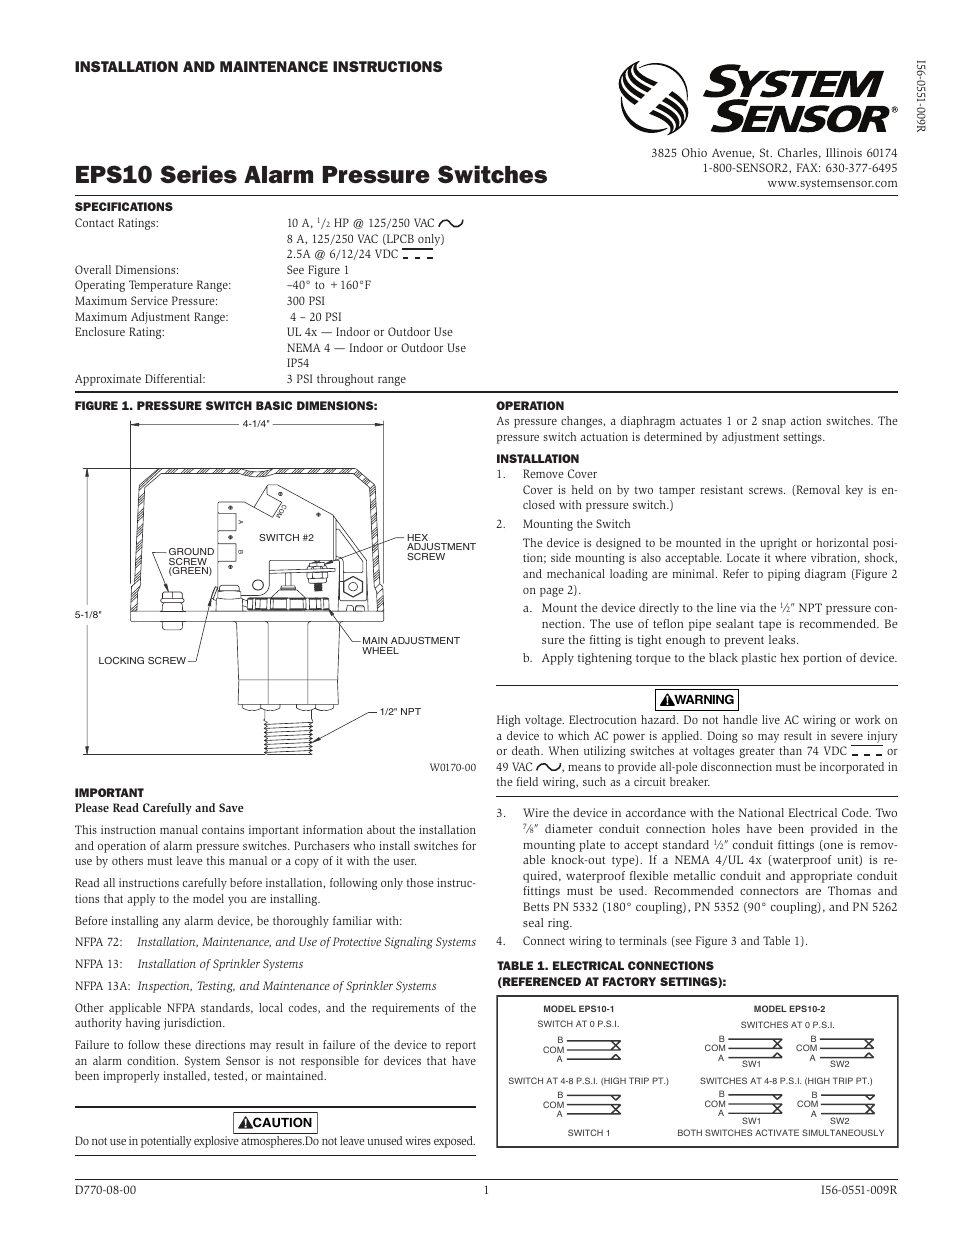 system sensor eps10 1 and eps10 2 page1 system sensor eps10 1 and eps10 2 user manual 2 pages 5R55E Transmission Wiring Diagram at panicattacktreatment.co